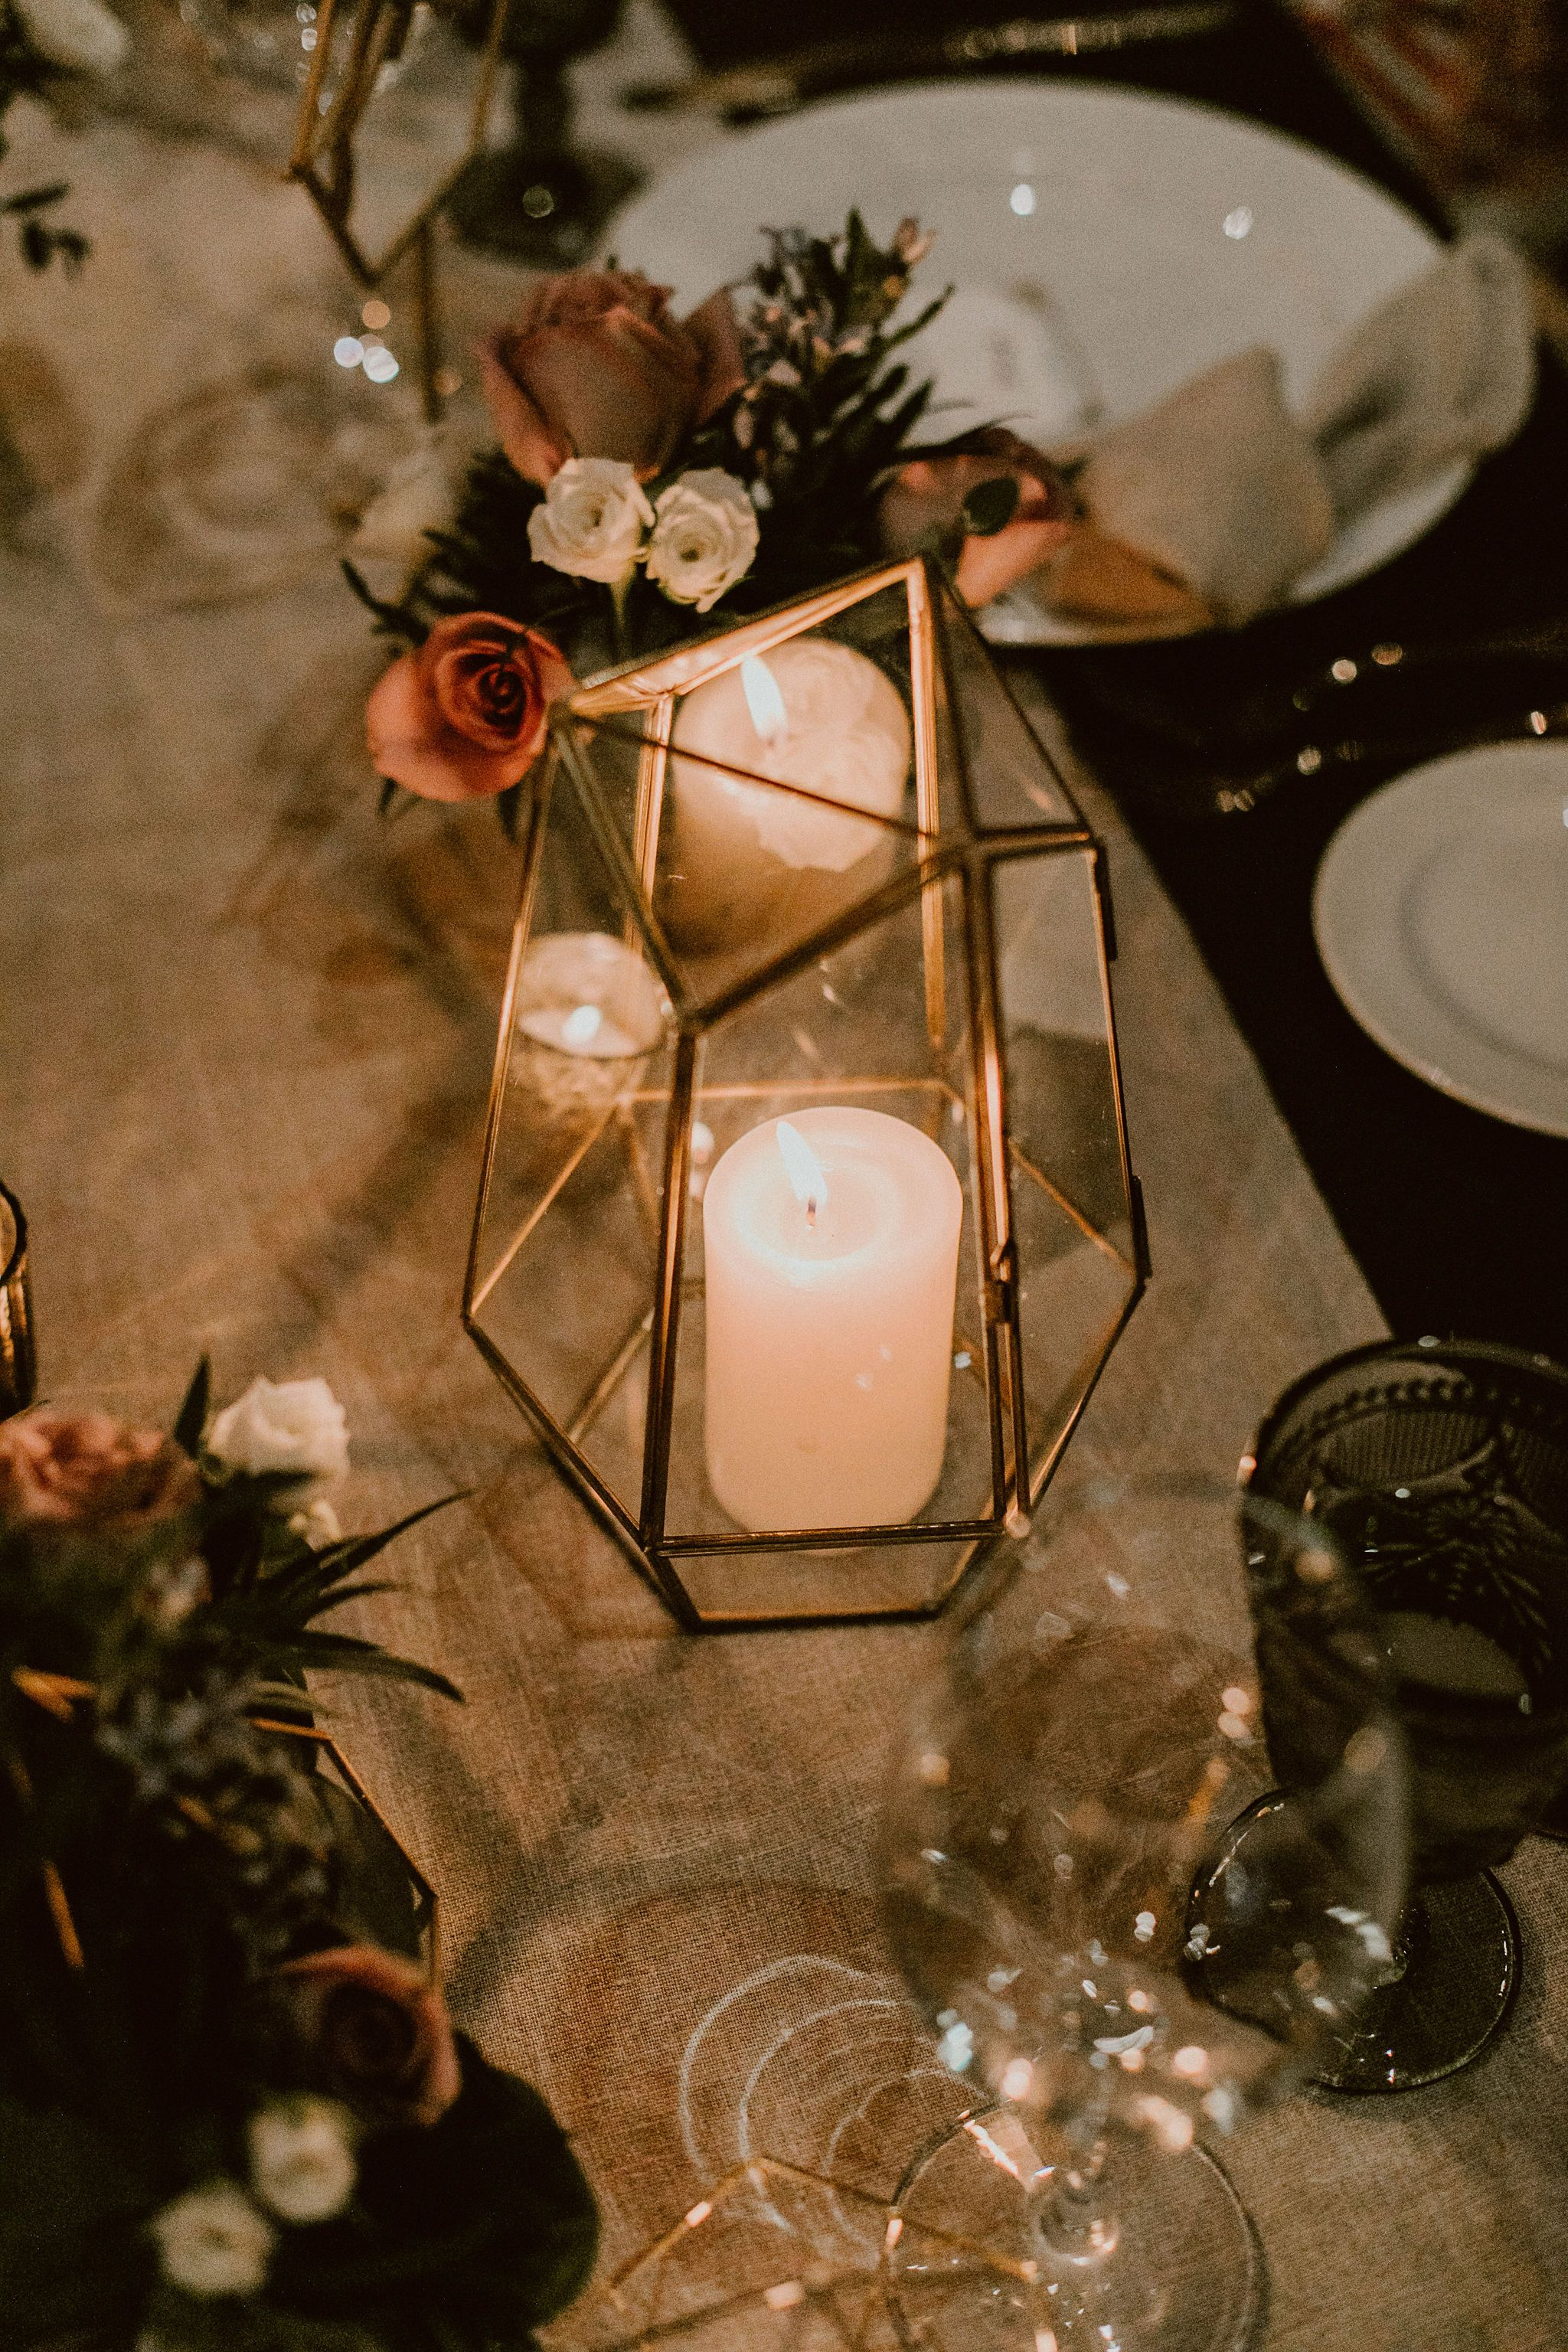 Candles and Flower design by Jesse Wolff at Cabo del Sol Beach Club House, Wedding venue. The Wedding Planning was done by Cabo Wedding Services.